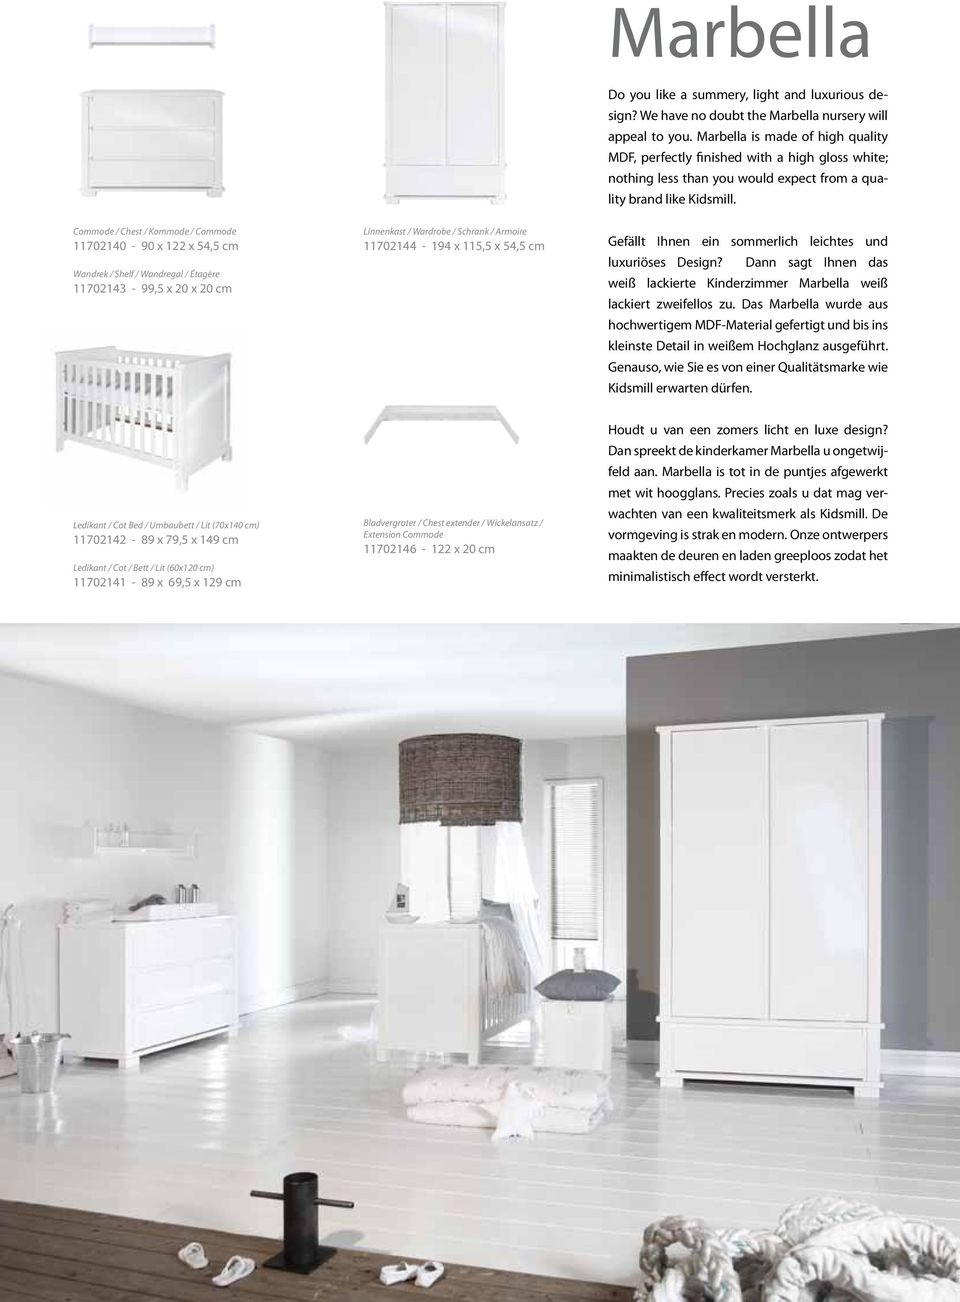 marbella is made of high quality mdf perfectly finished with a high gloss white